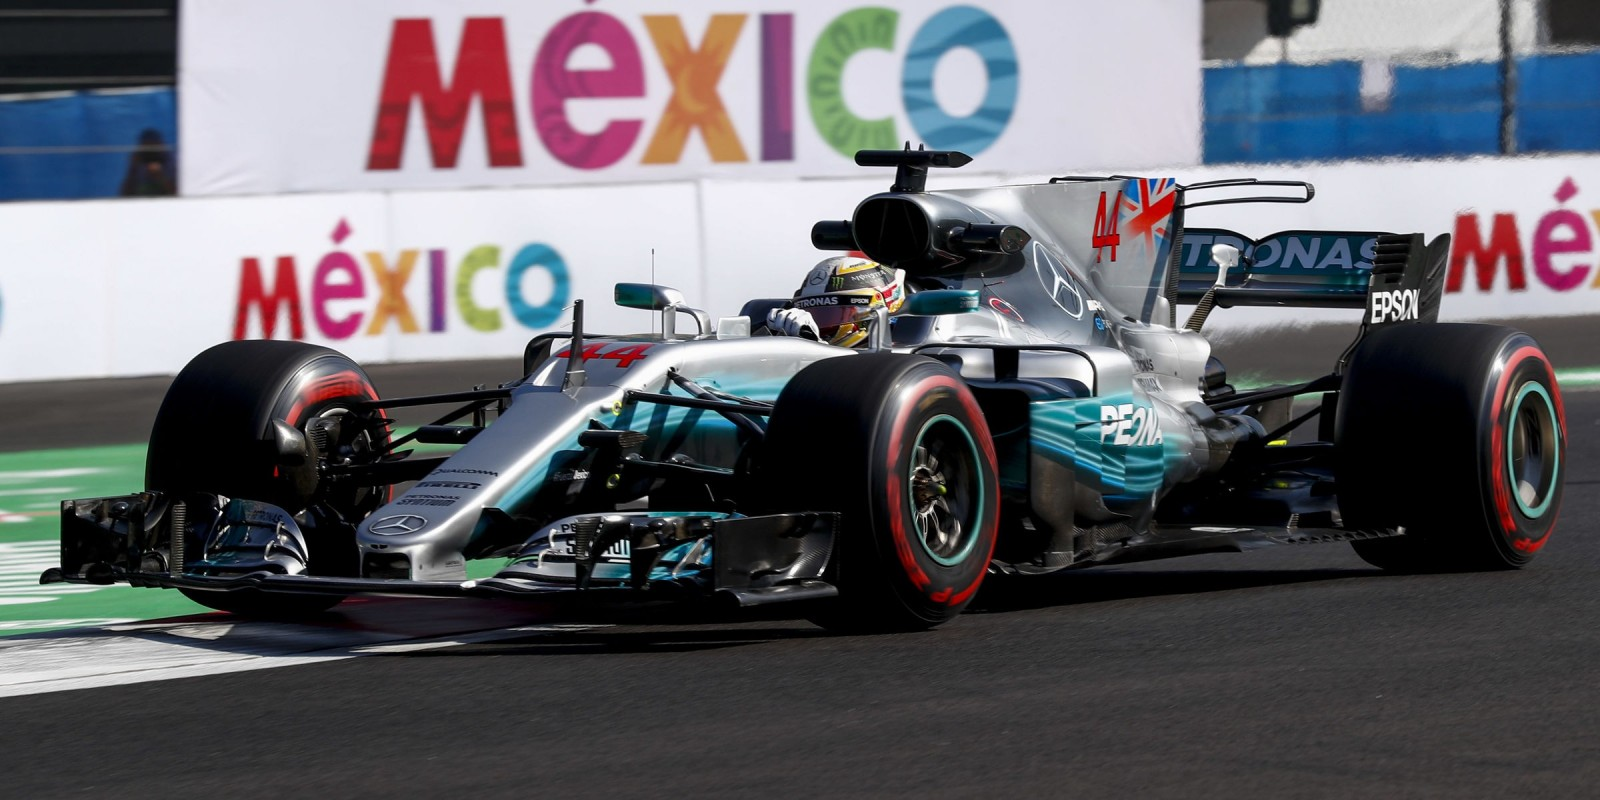 Saturday images from the 2017 Mexican Grand Prix